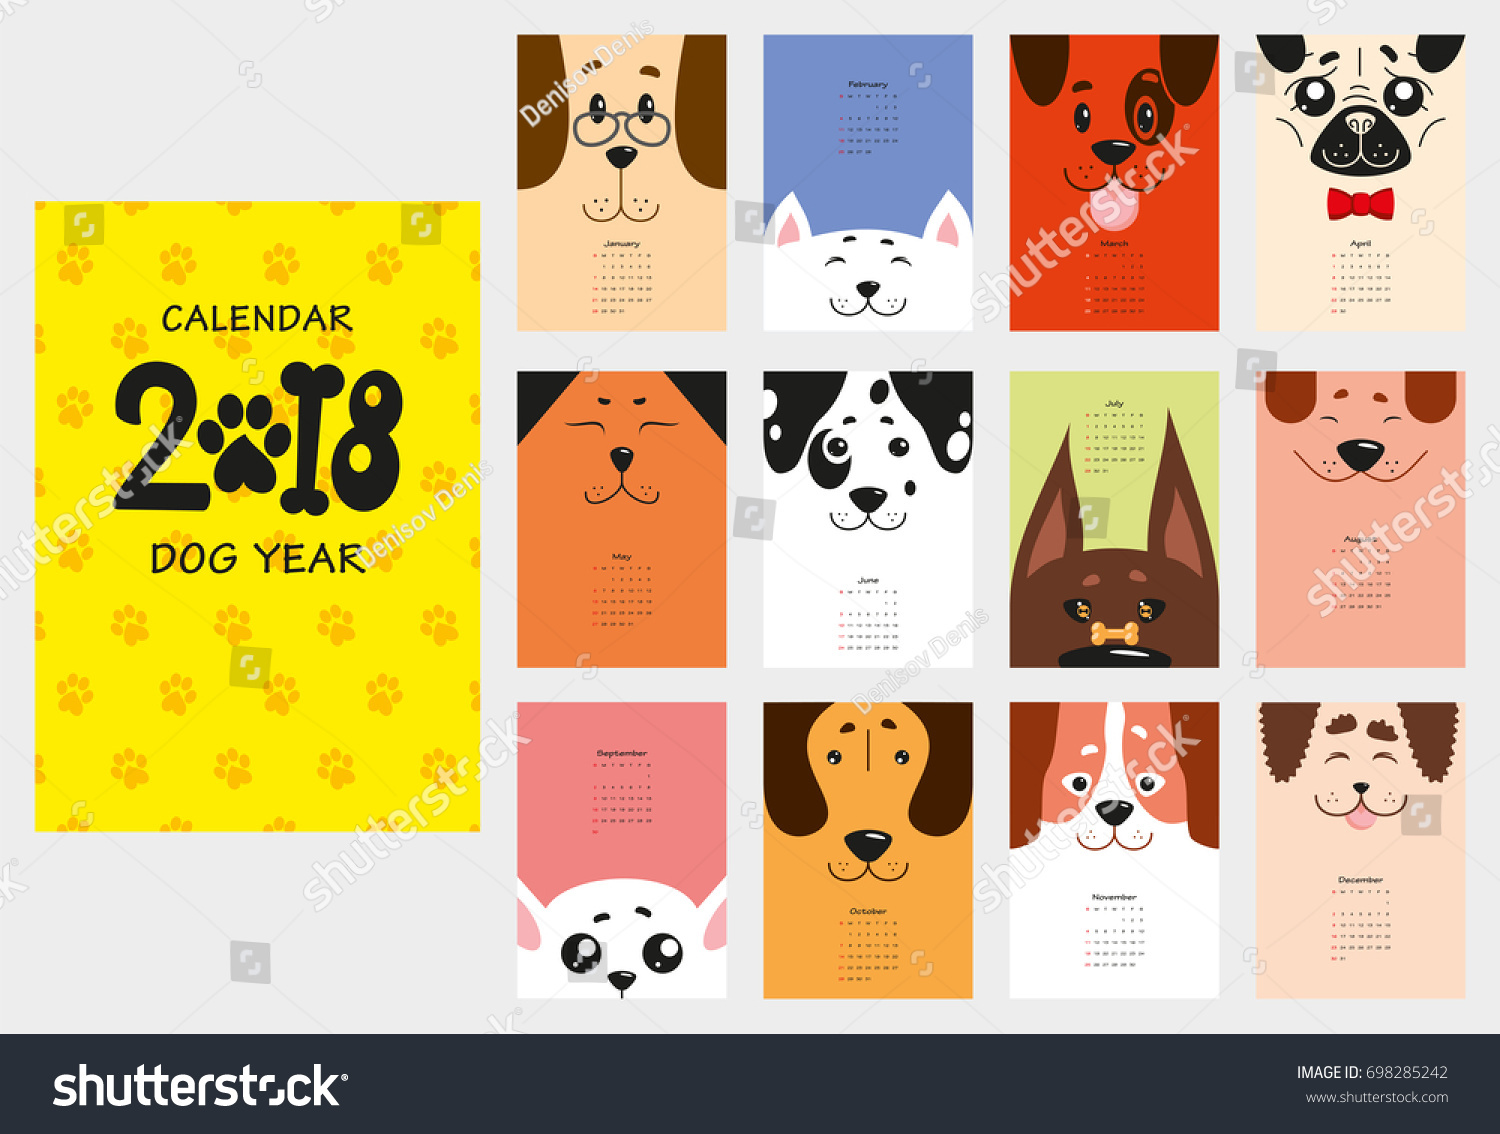 Drawing Calendar 2018 : Monthly calendar funny dogs puppies stock vector